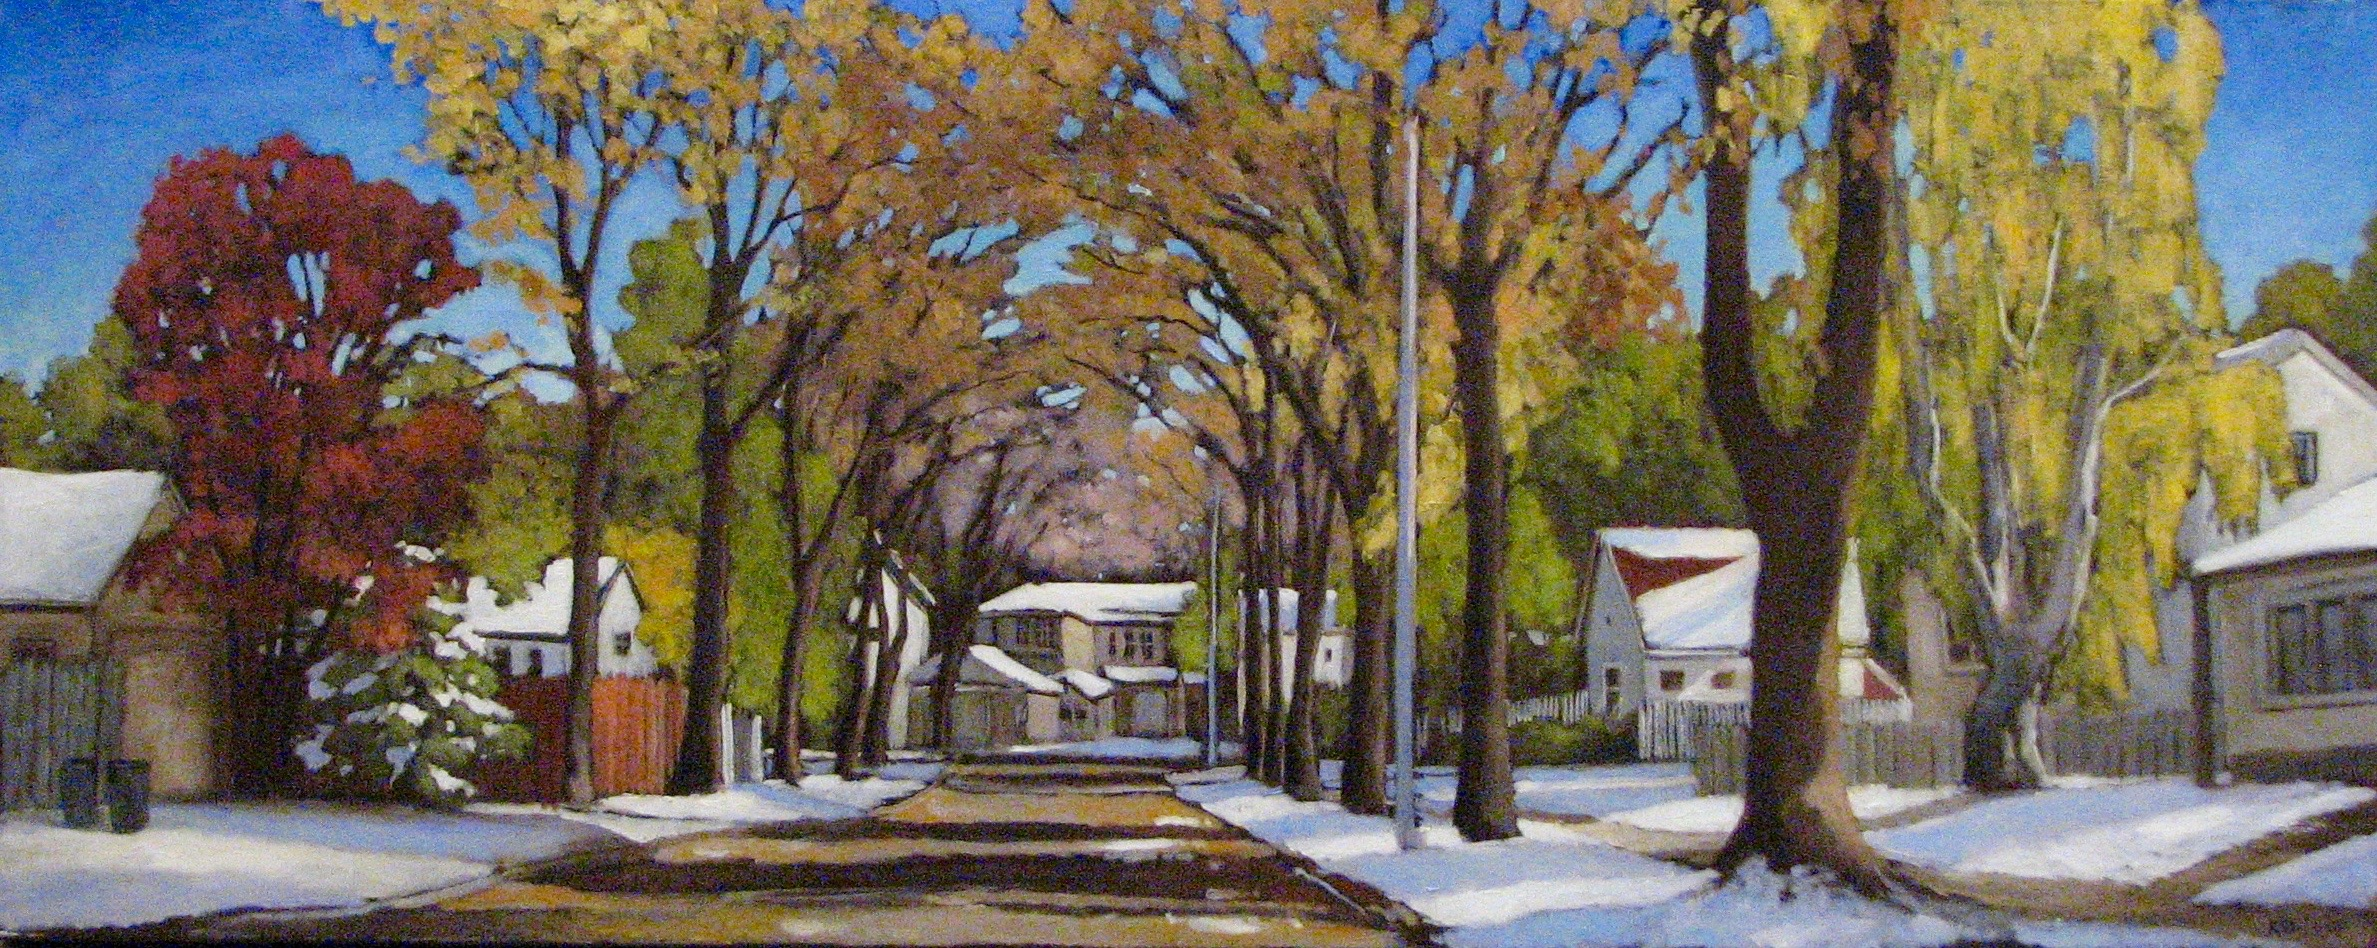 Early Snow by  Kari Duke - Masterpiece Online